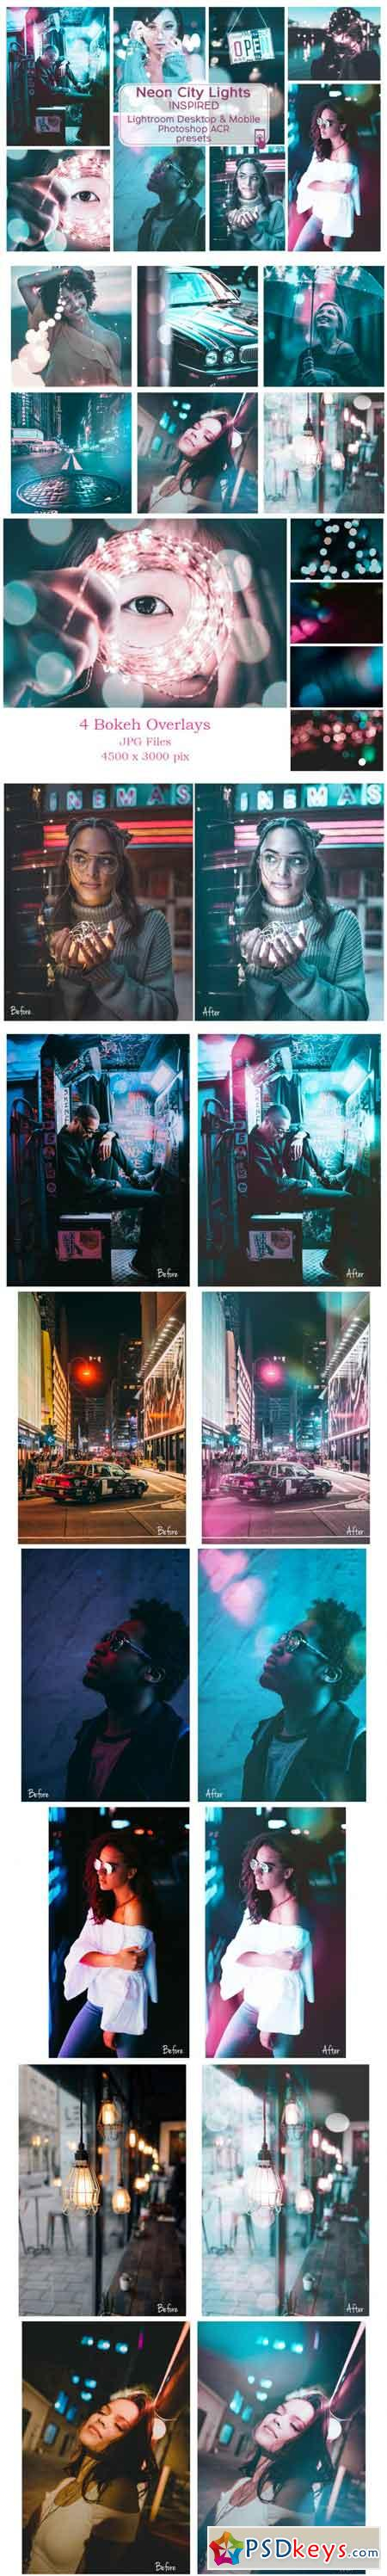 Lr & Ps Presets ACR Neon City Lights 3468626